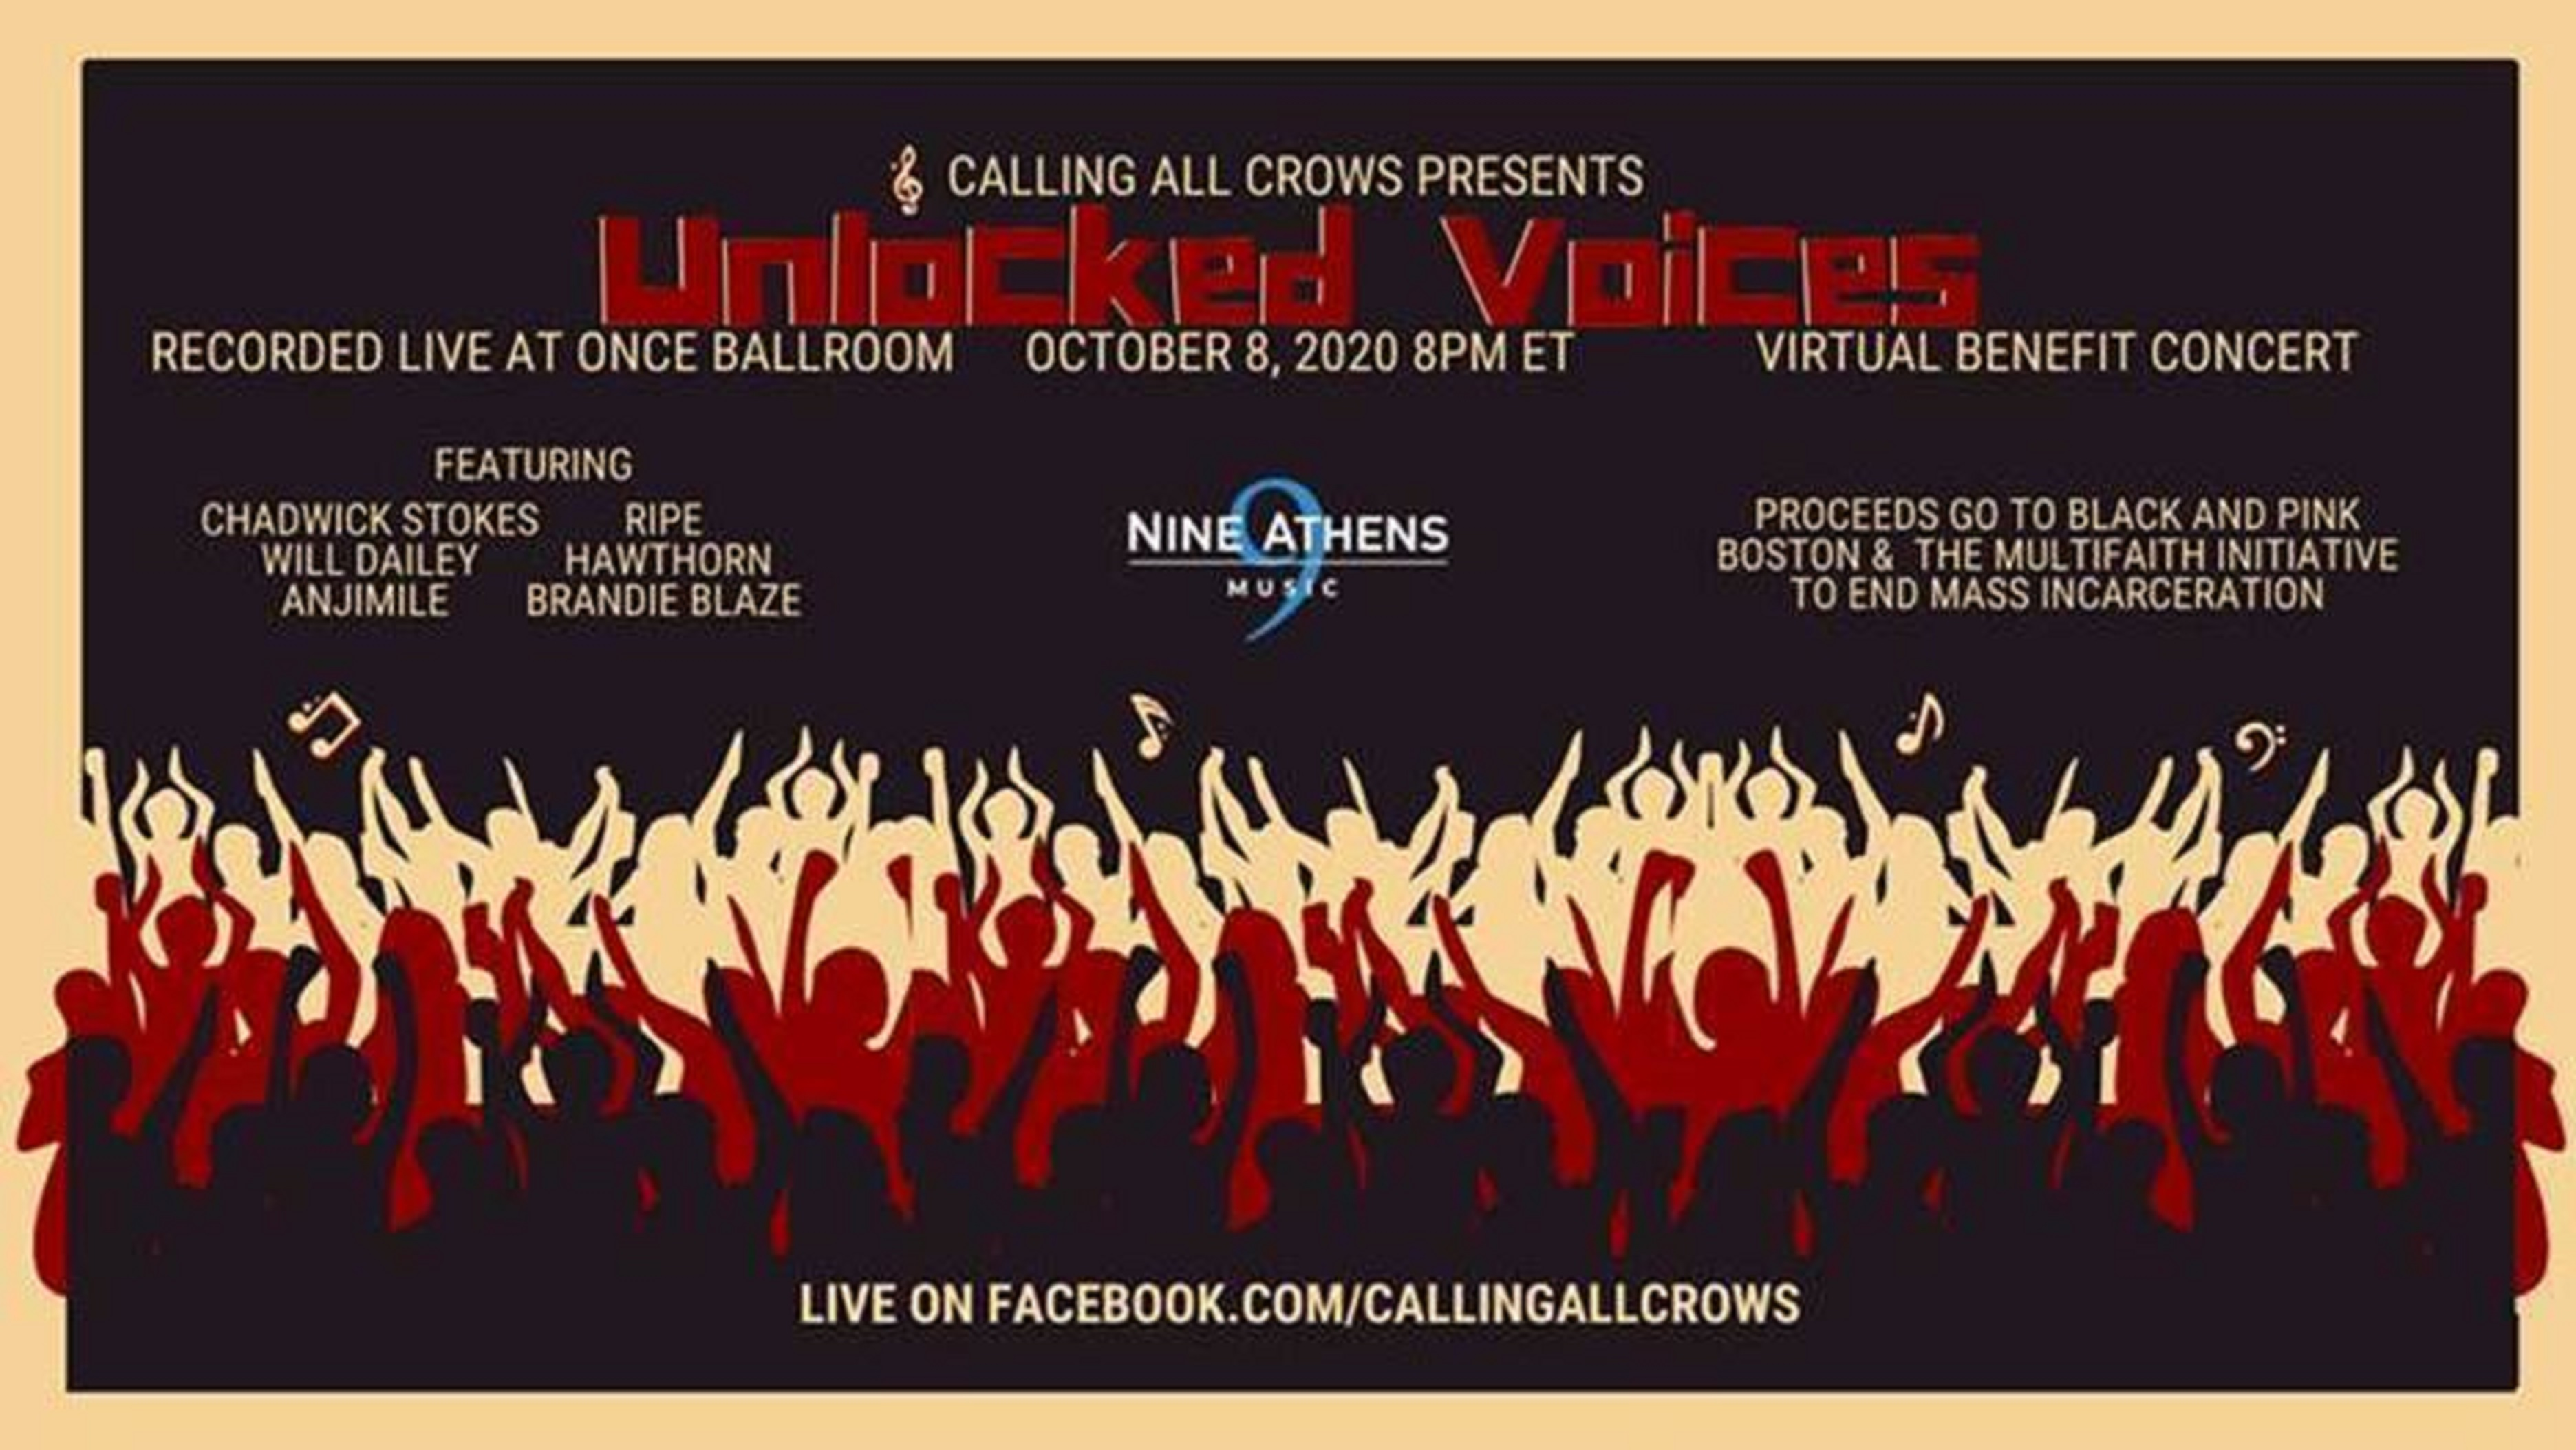 CALLING ALL CROWS 'Unlocked Voices' a Streaming Concert To Bring Awareness About Mass Incarceration